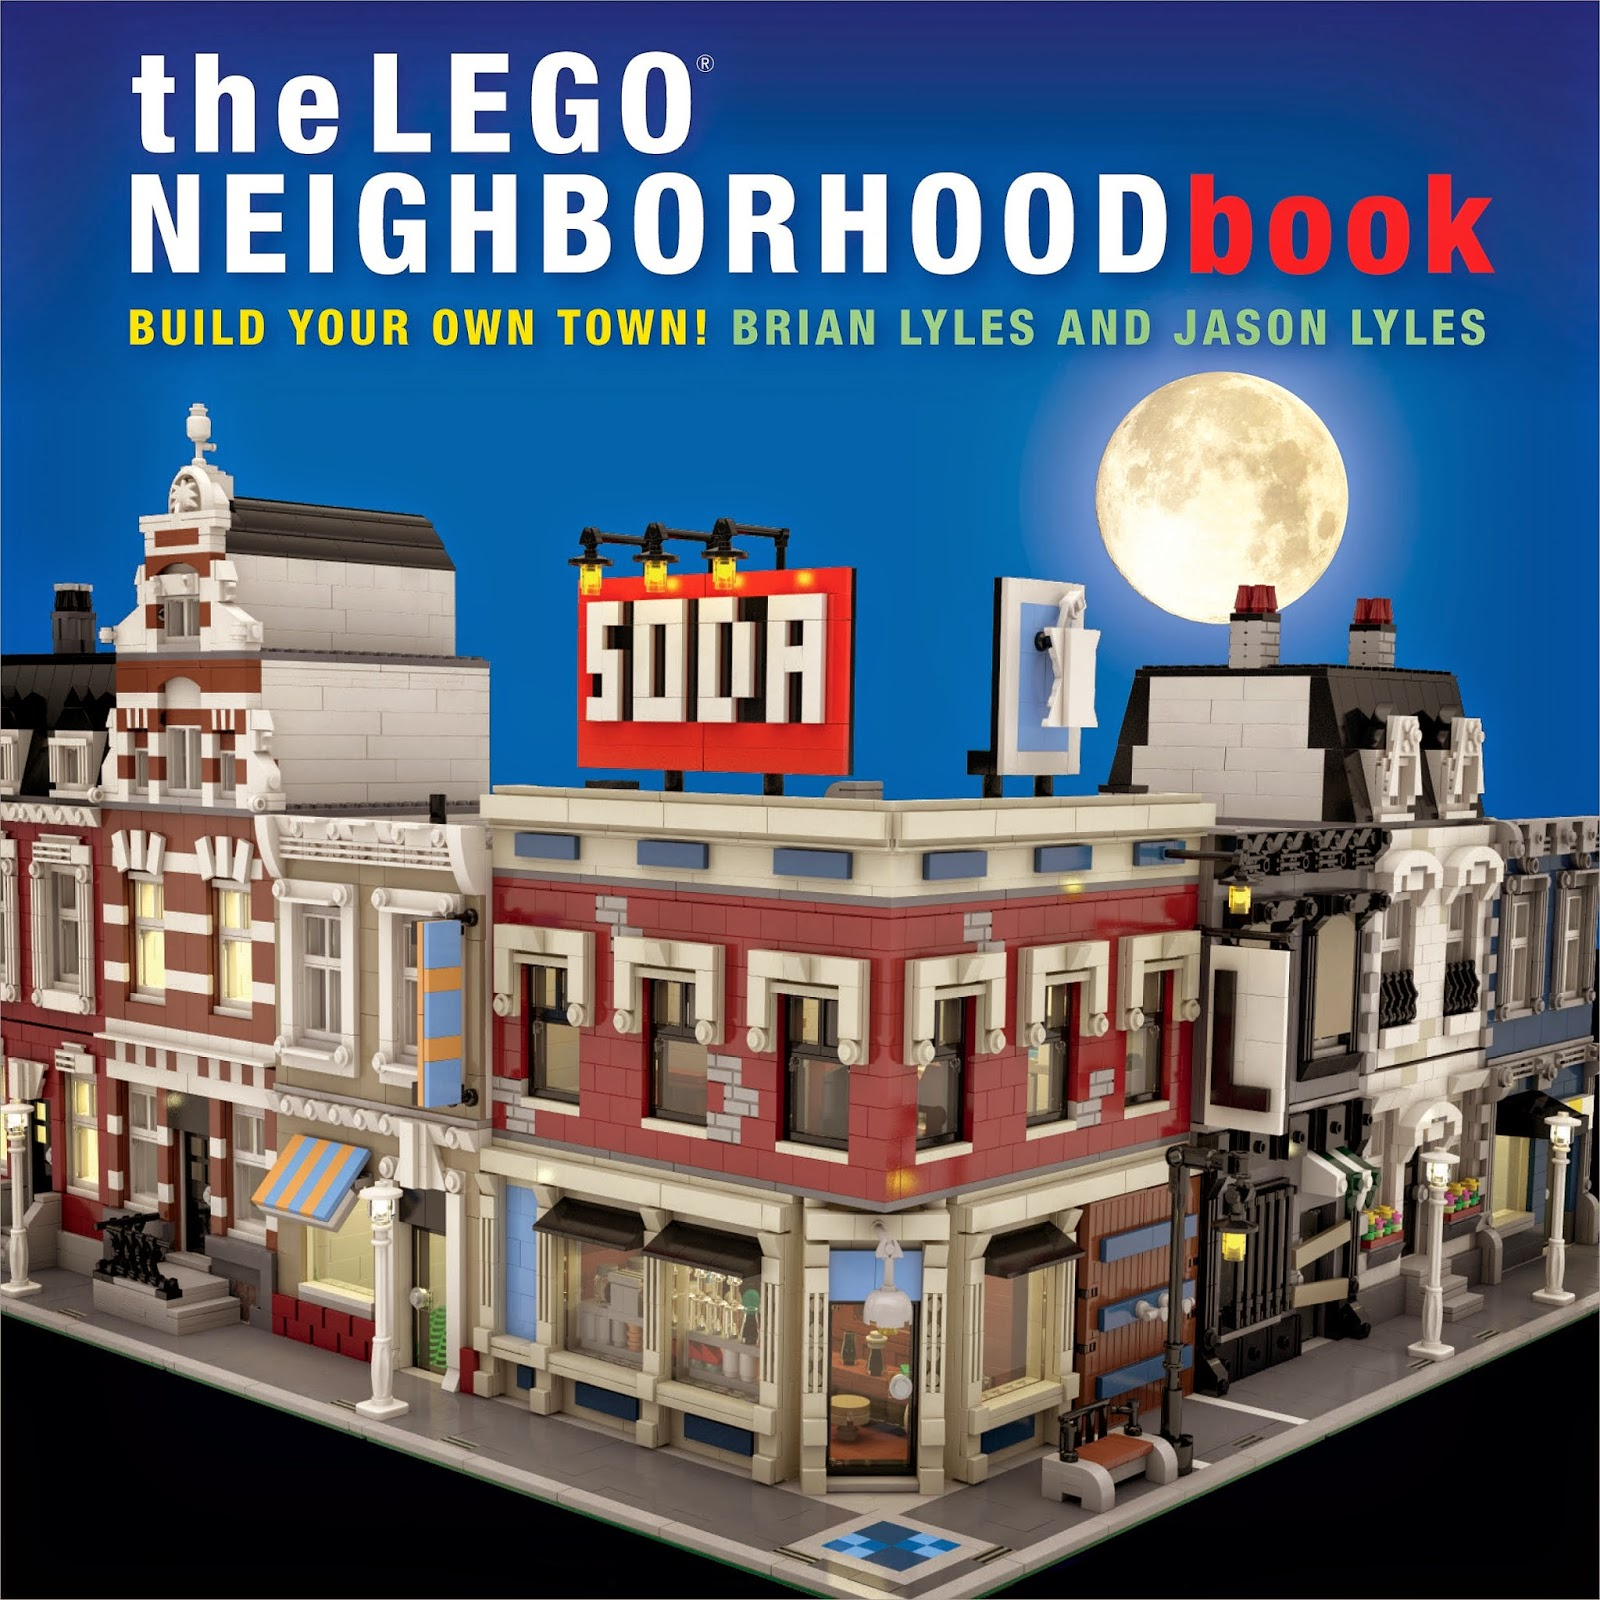 The Lego Neighborhood Book Review